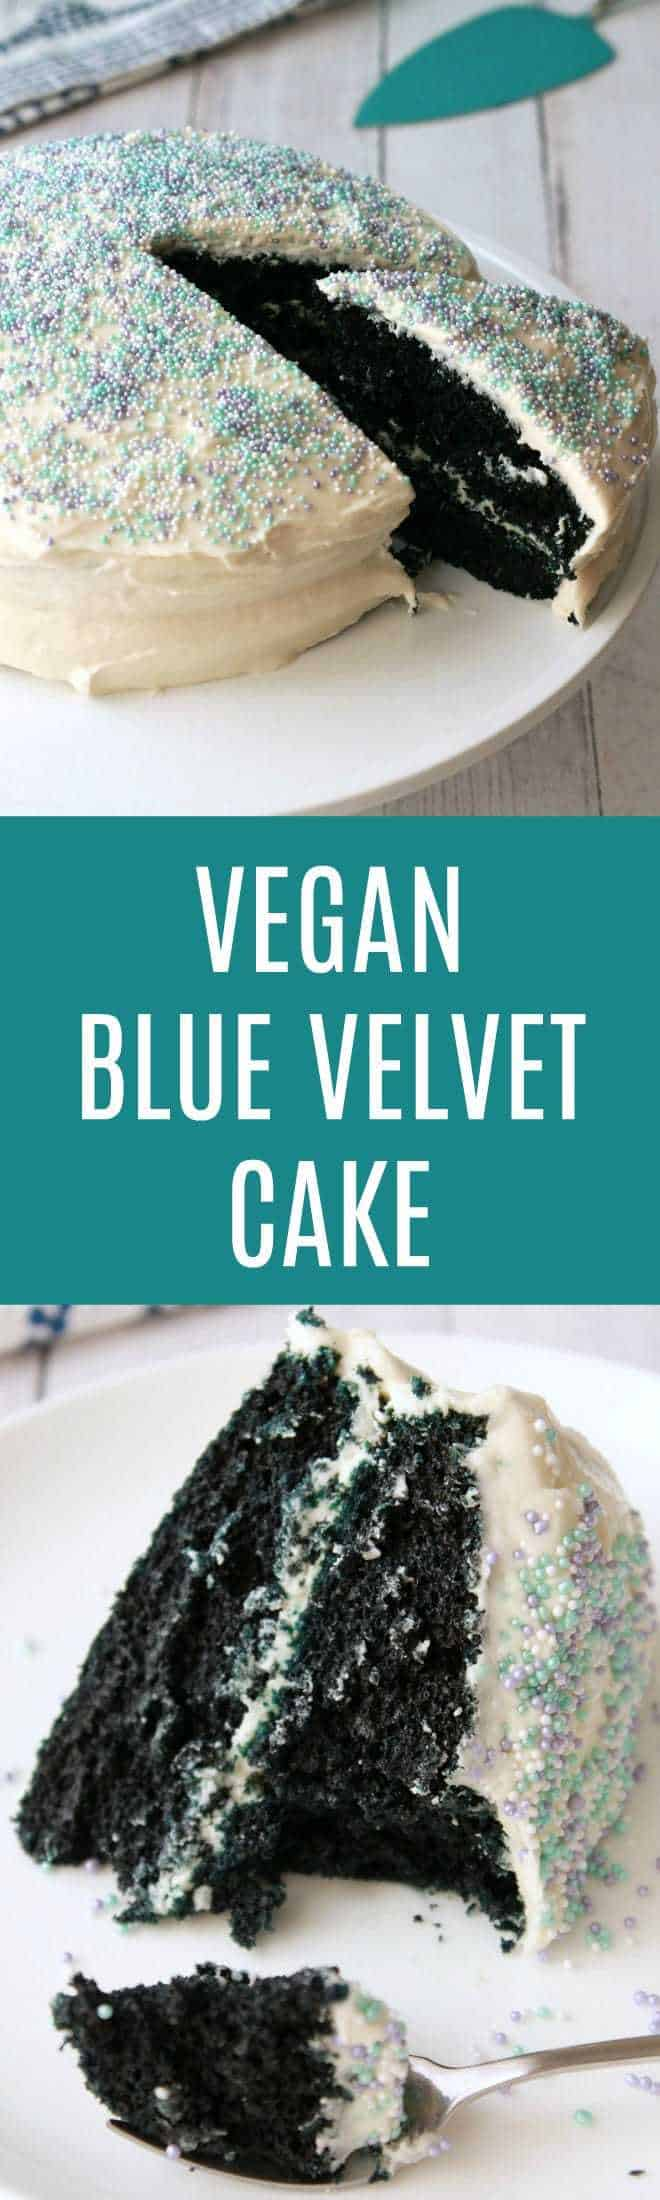 Midnight blue vegan blue velvet cake. This 2-layer vegan cake is perfectly moist, rich and delicious. Frosted with vegan vanilla frosting. Vegan | Vegan Cakes | Vegan Desserts | Vegan Recipes | Vegan Food | lovingitvegan.com